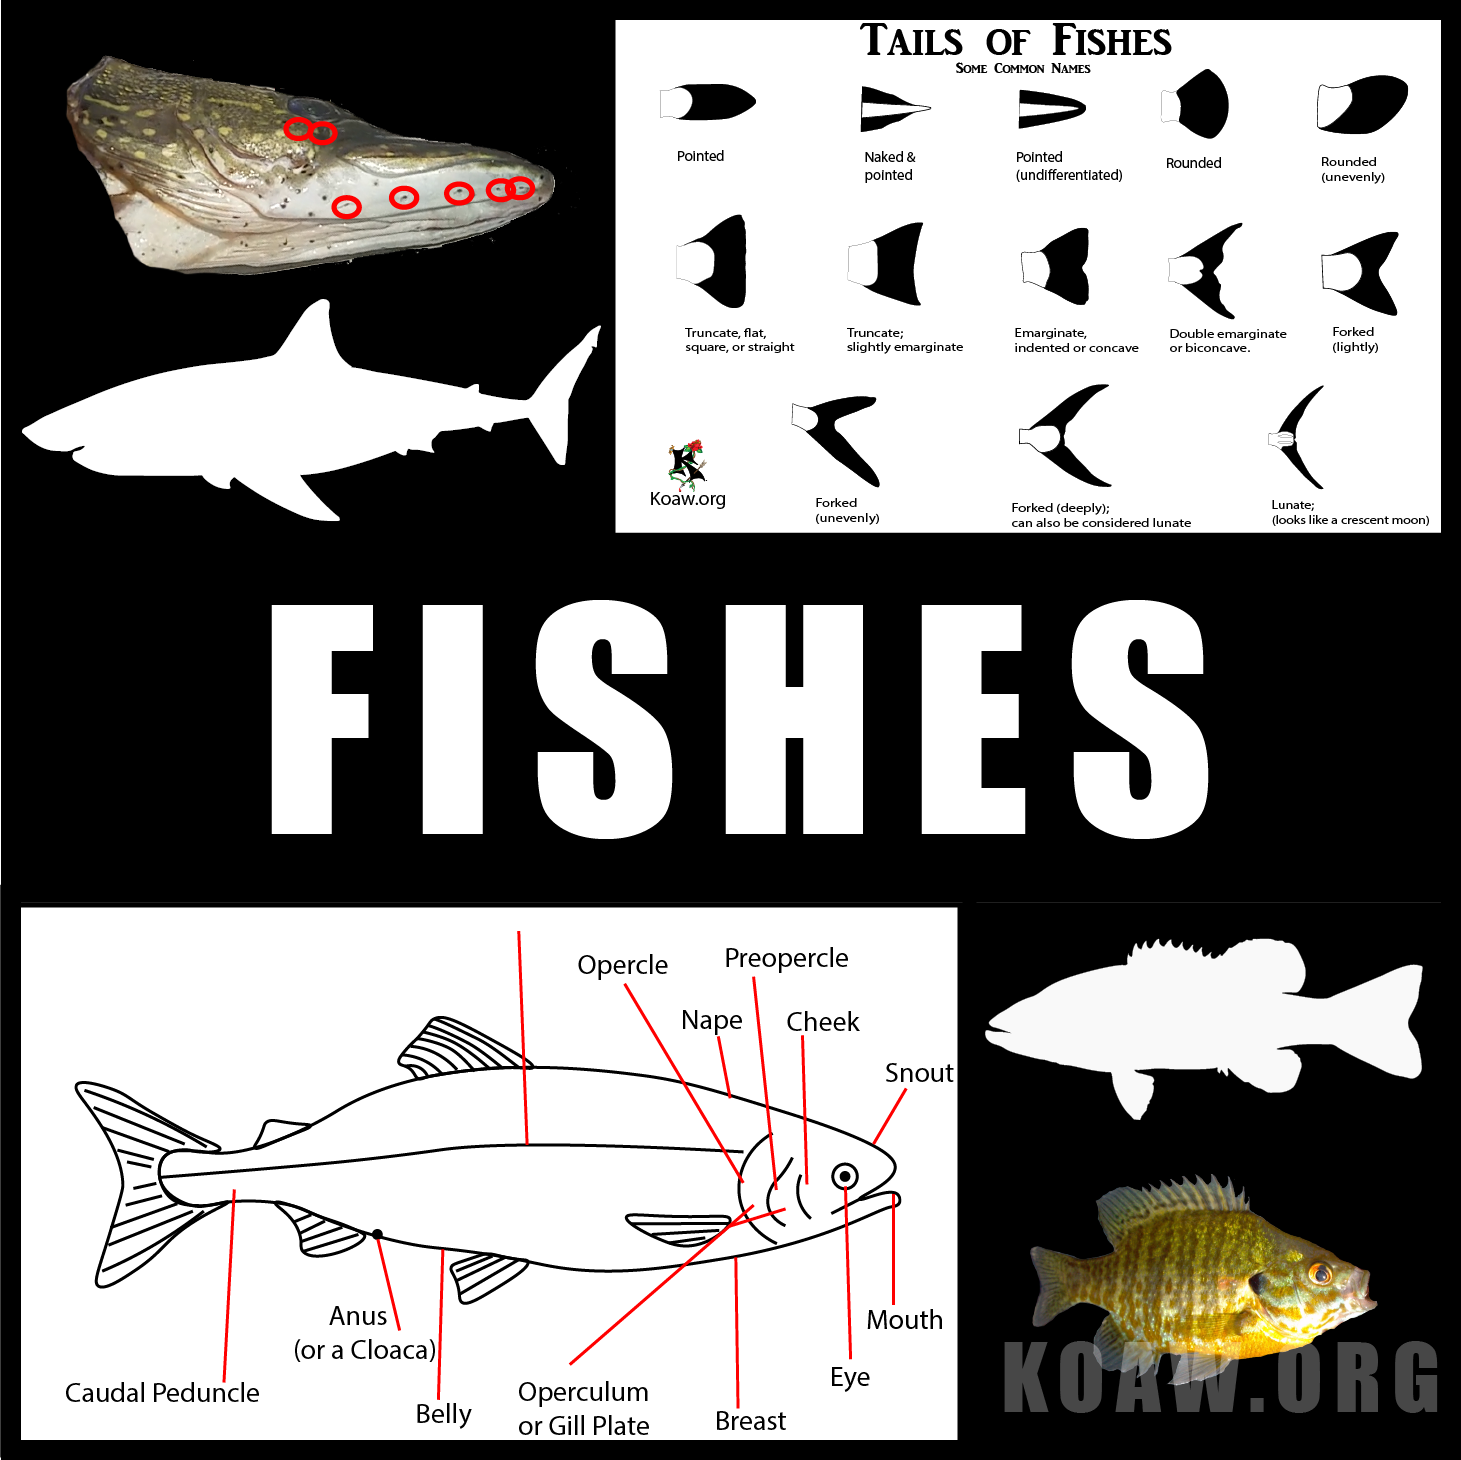 fishes koaw org.png